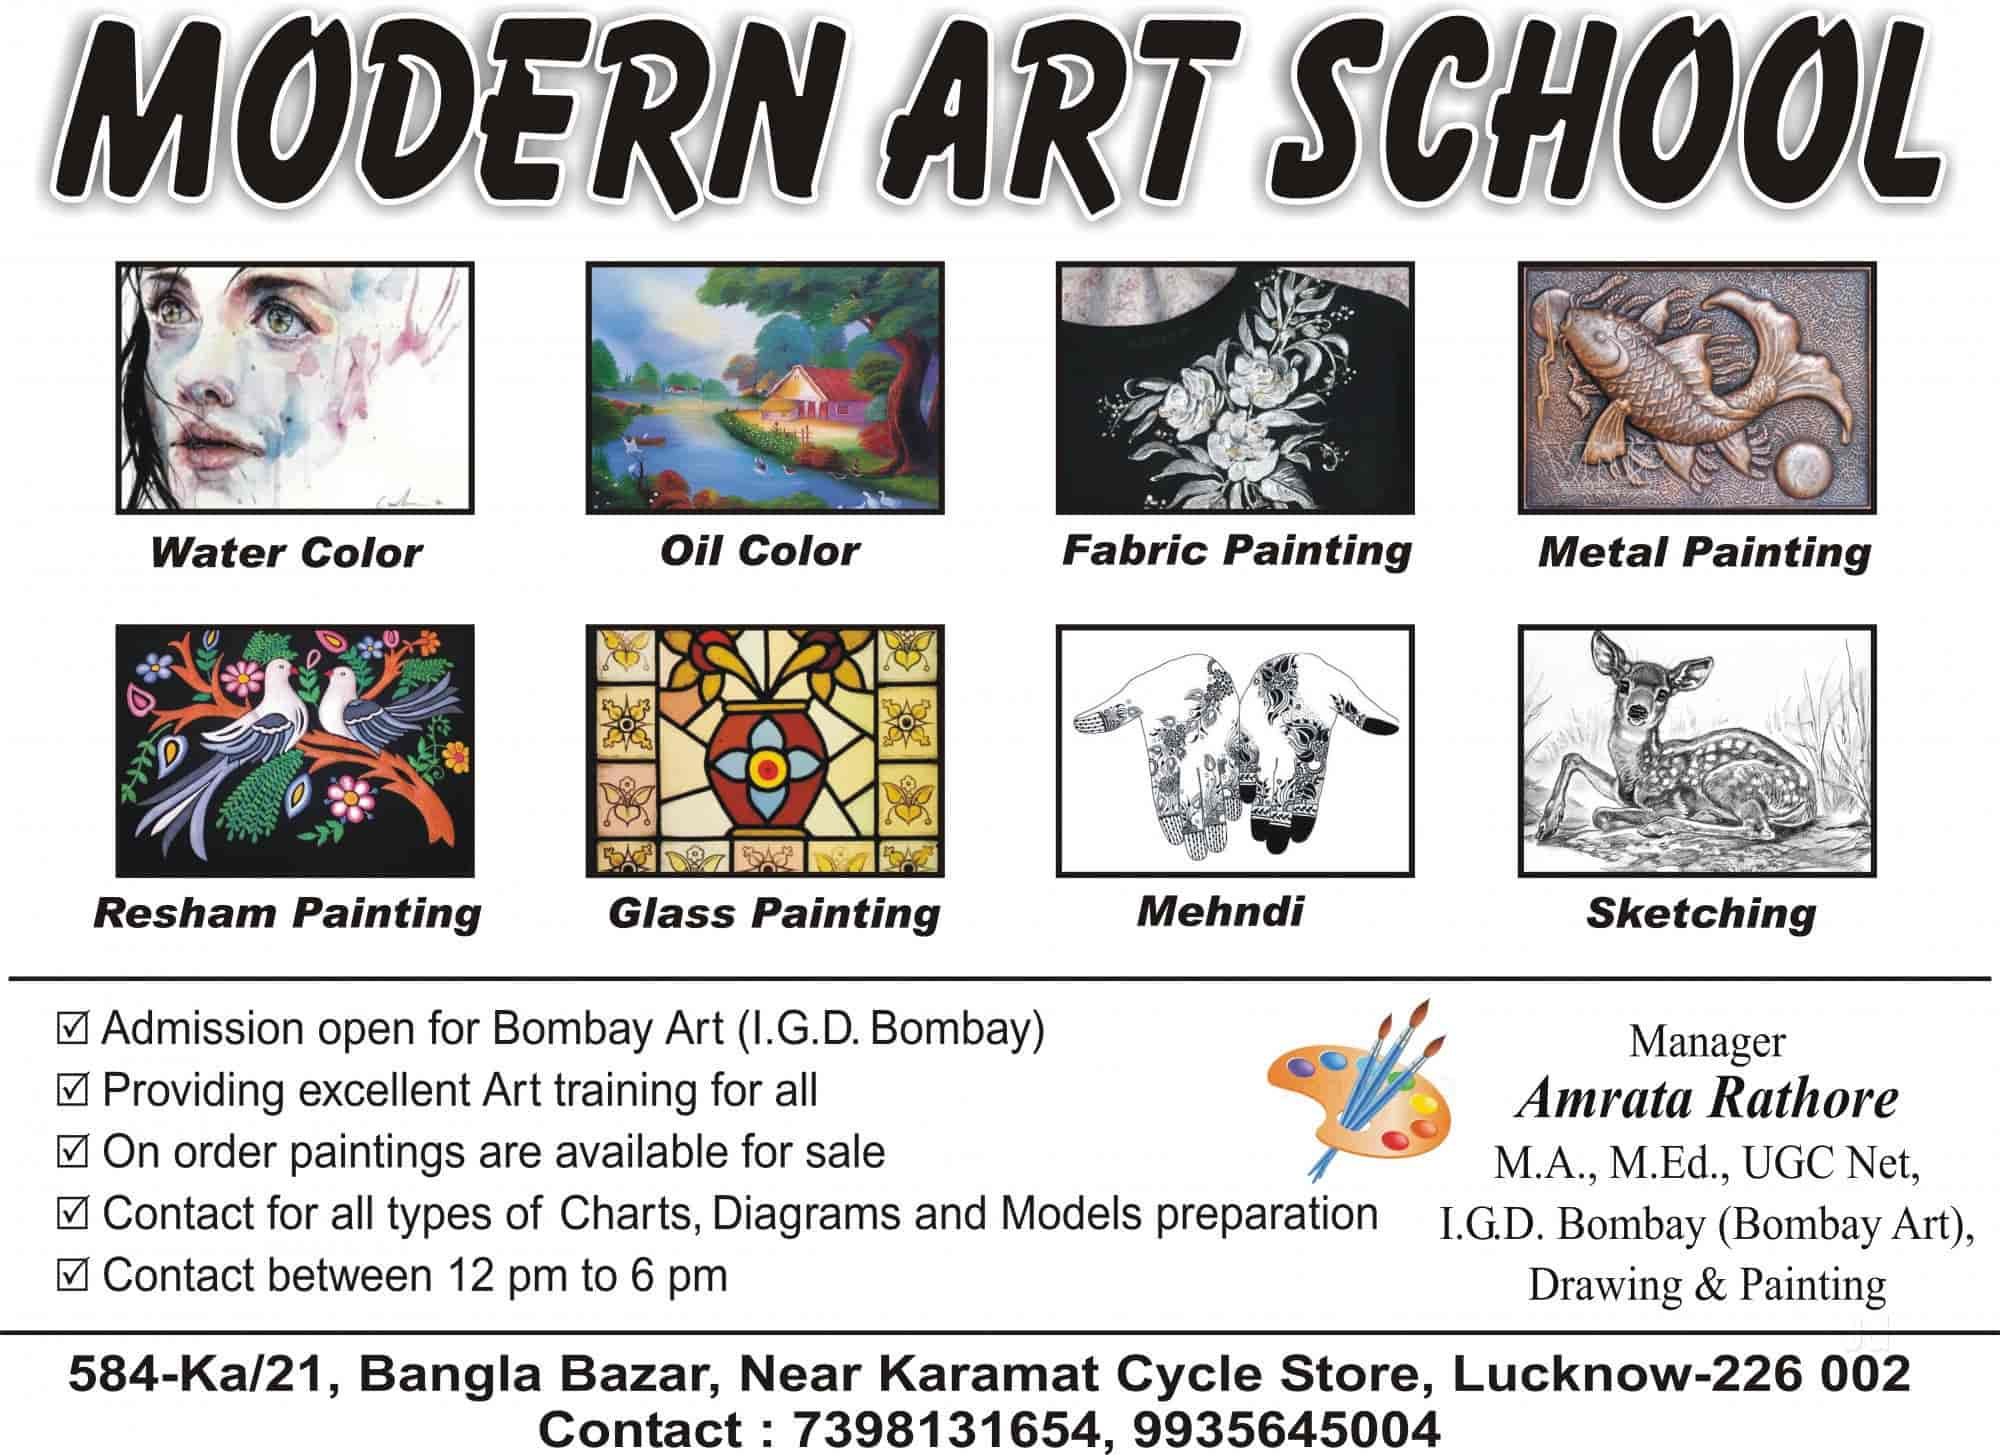 Modern art school, Bangla Bazar - Arts & Crafts Classes in